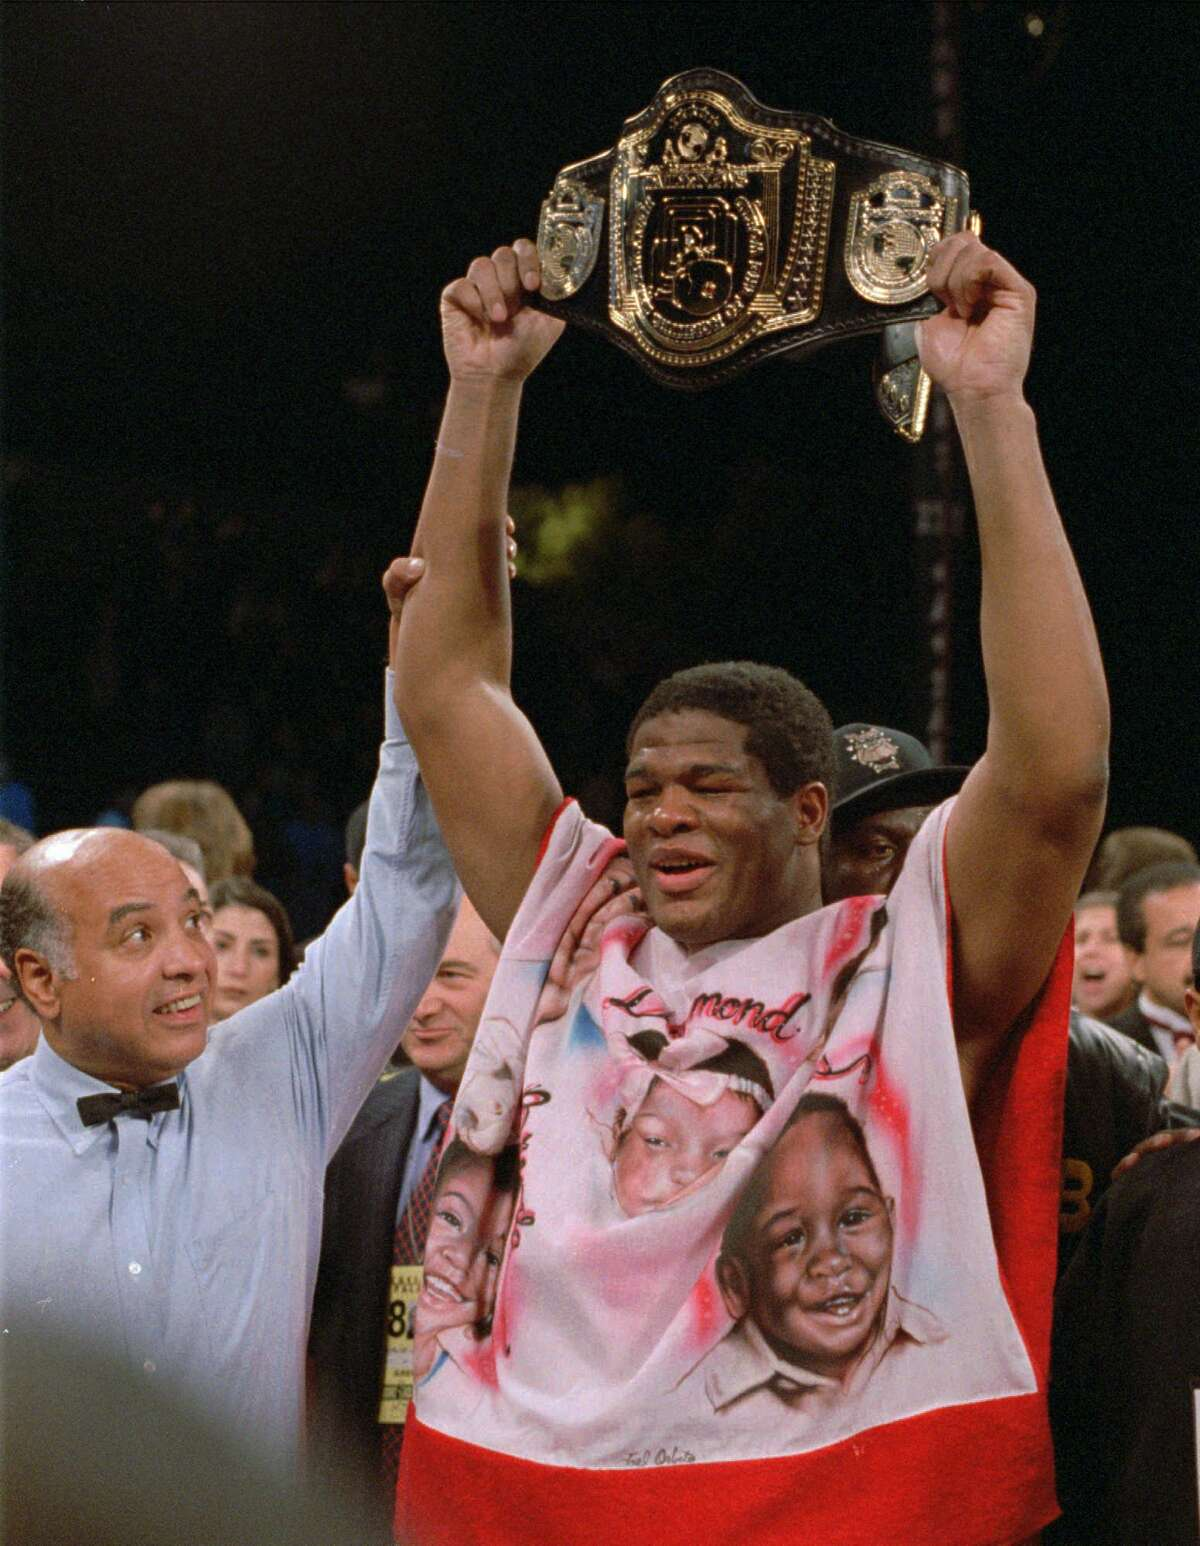 """FILE -- In this Nov. 4, 1994, file photo, referee Joe Cortez, left, signals heavyweight champion Riddick Bowe the winner as Bowe celebrates his victory over Evander Holyfield at Caesars Palace in Las Vegas. Riddick Bowe, who beat undisputed champion Evander Holyfield to win the heavyweight boxing title in 1992, and popular lightweight champion Ray """"Boom Boom"""" Mancini have been selected for induction into the International Boxing Hall of Fame. The induction ceremony will be held June 14 at the Hall of Fame in upstate New York. (AP Photo/Lennox McLendon, File) ORG XMIT: NY172"""